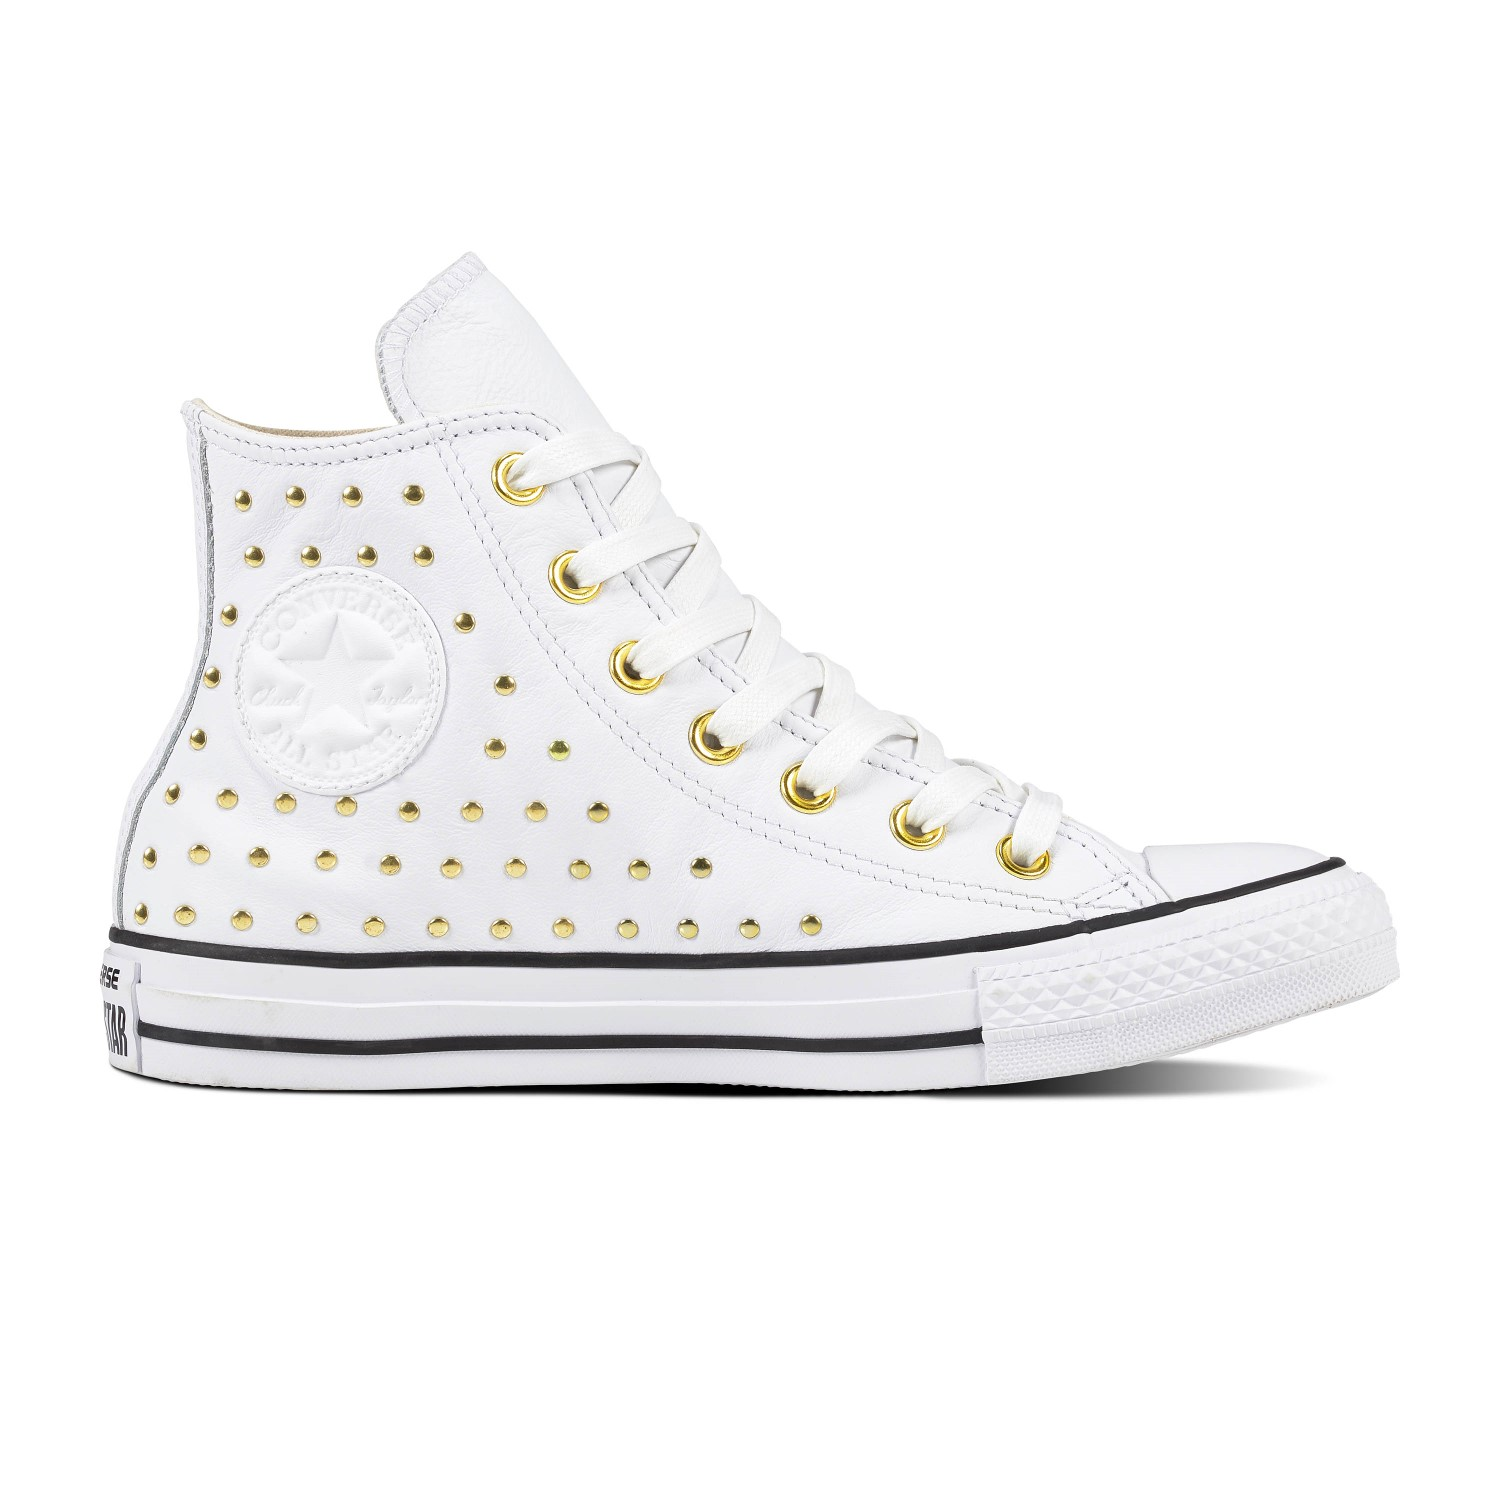 Converse white ankle boots with Chuck